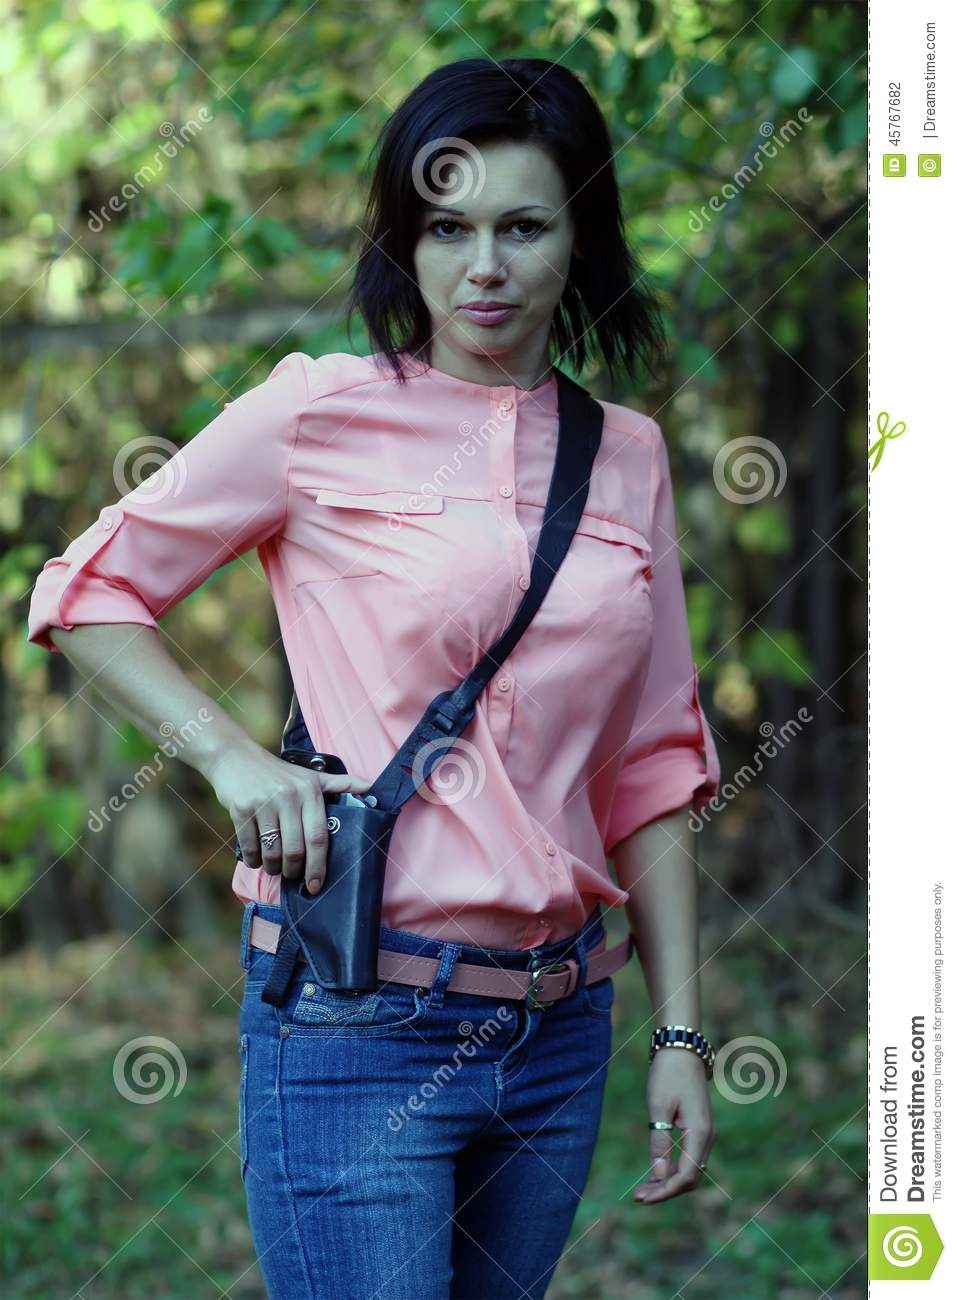 Girl With A Gun In His Hand Stock Photo Image 45767682